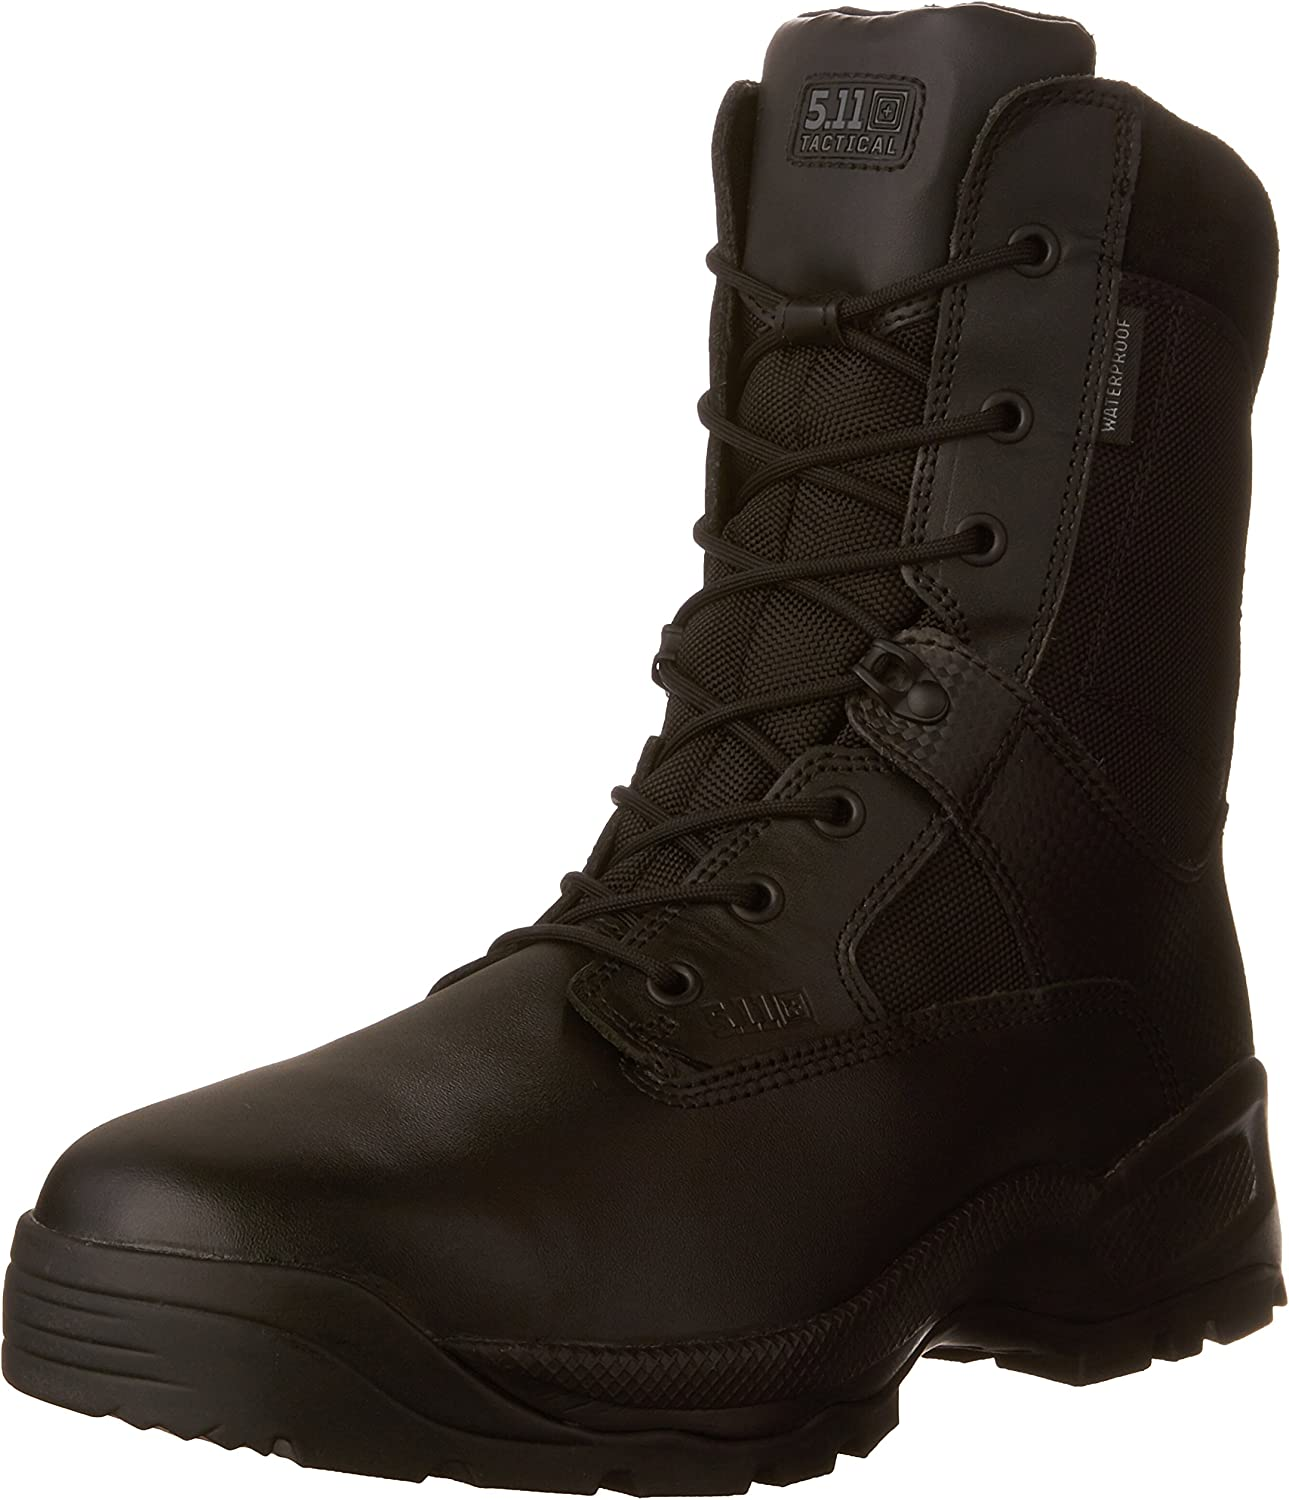 5.11 Tactical Men's ATAC 1.0 Waterproof Military Storm Boots, Slip Resistant Outsole, Style 12004: Shoes